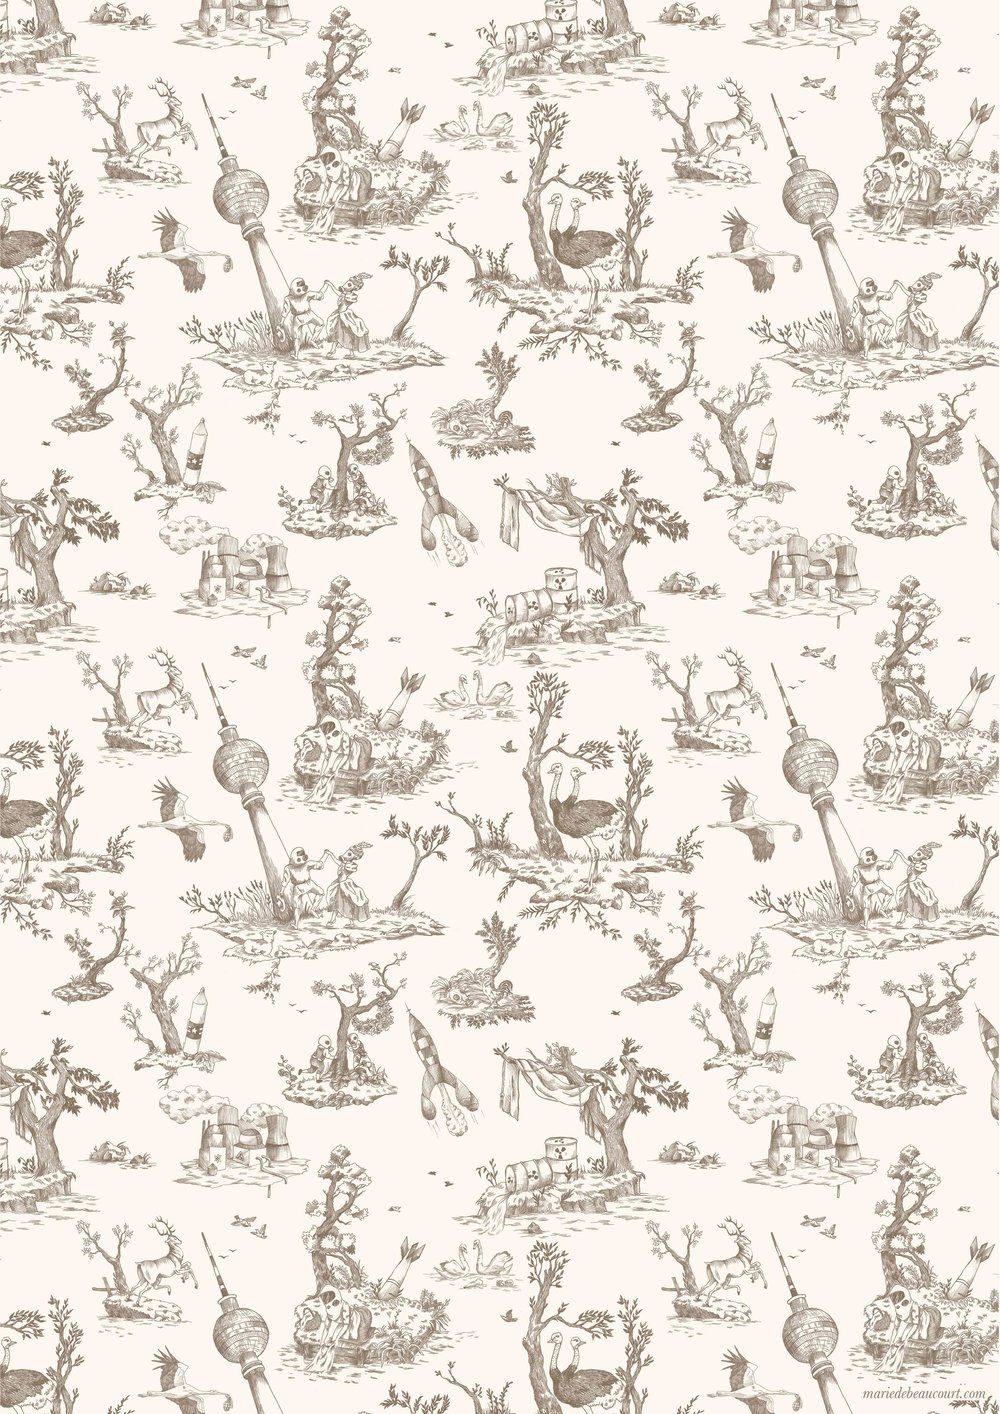 marie-de-beaucourt-illustration-surface-pattern-dystopian-toile-de-jouy-sienne-2017-web.jpg